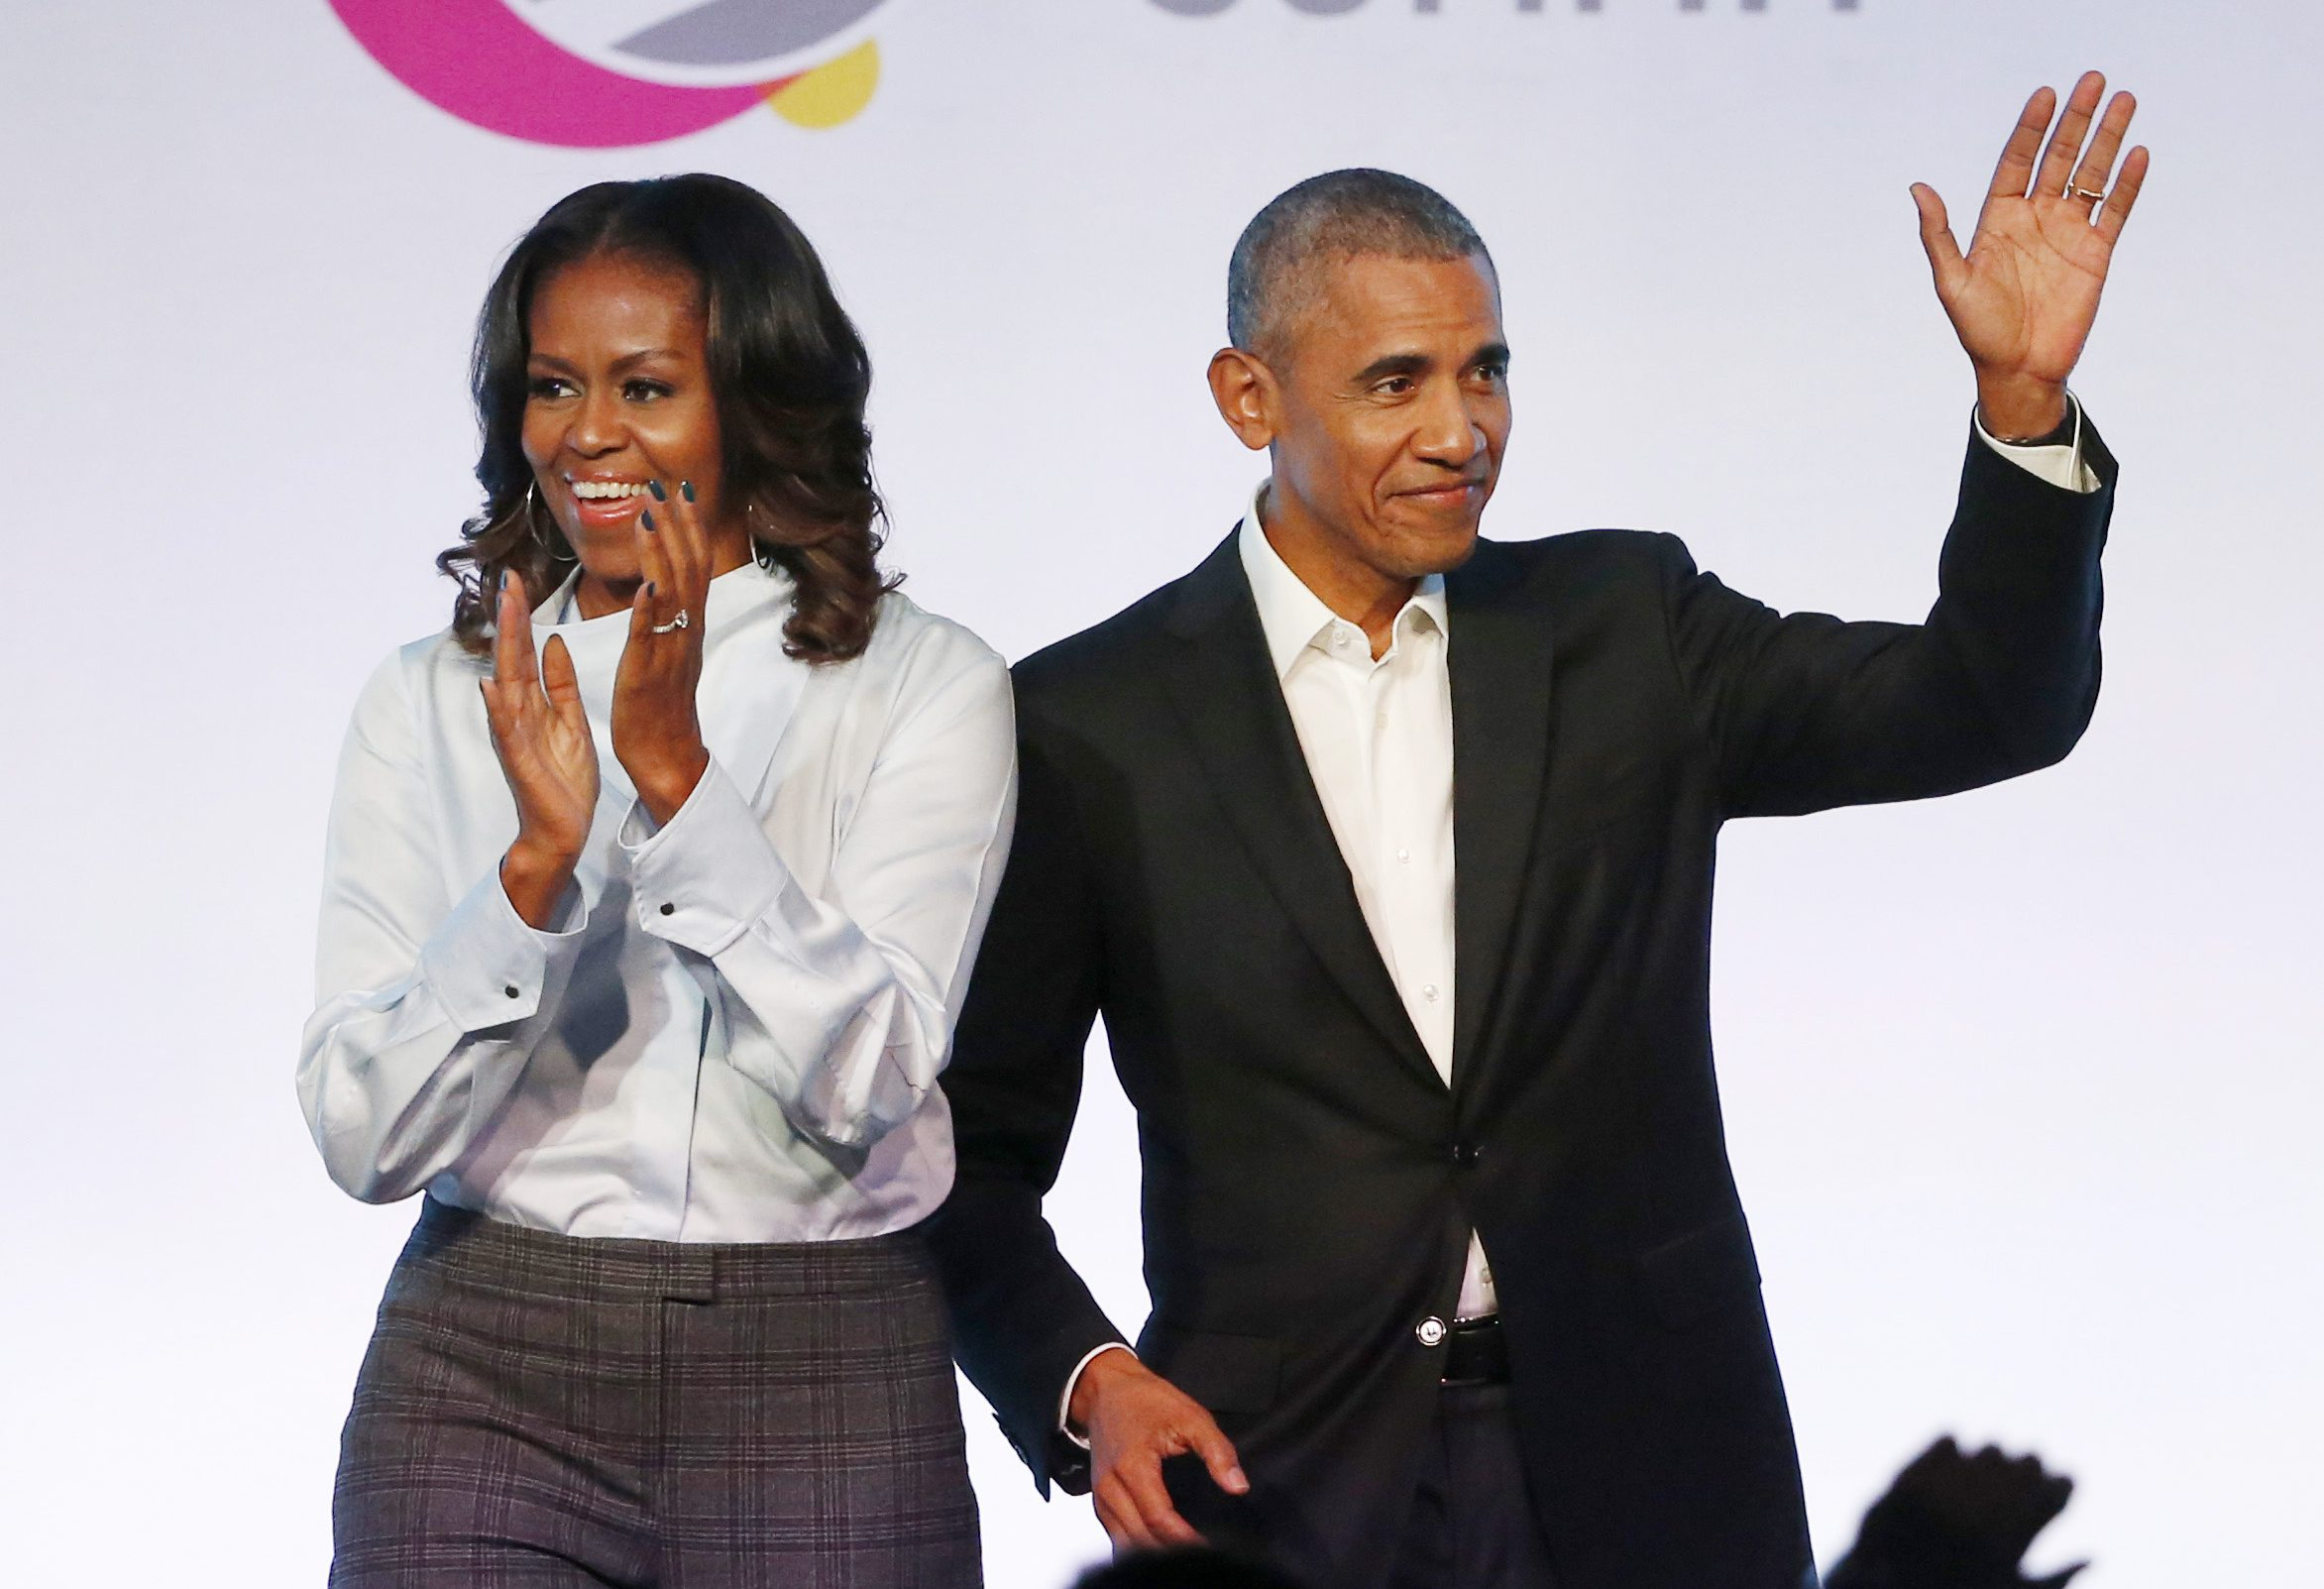 Barack Obama, Michelle Obama. Former President Barack Obama, right, and former first lady Michelle Obama arrive for the first session of the Obama Foundation Summit, in ChicagoObama Sumit, Chicago, USA - 31 Oct 2017